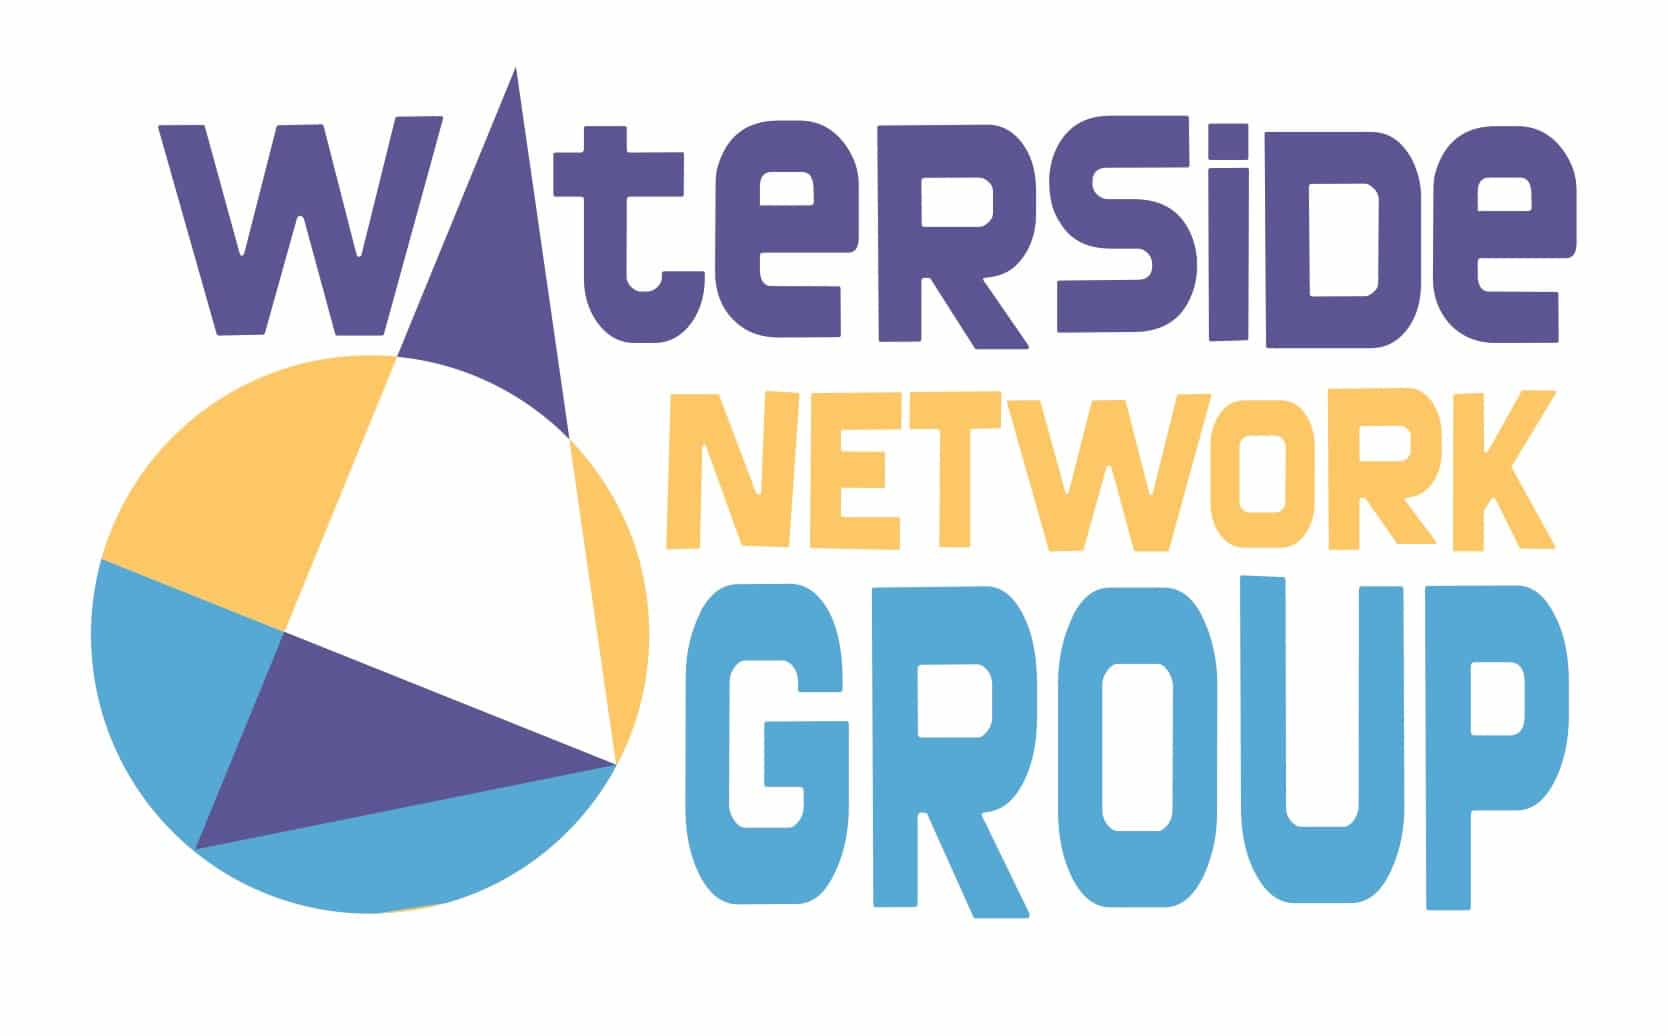 Waterside Networking Group